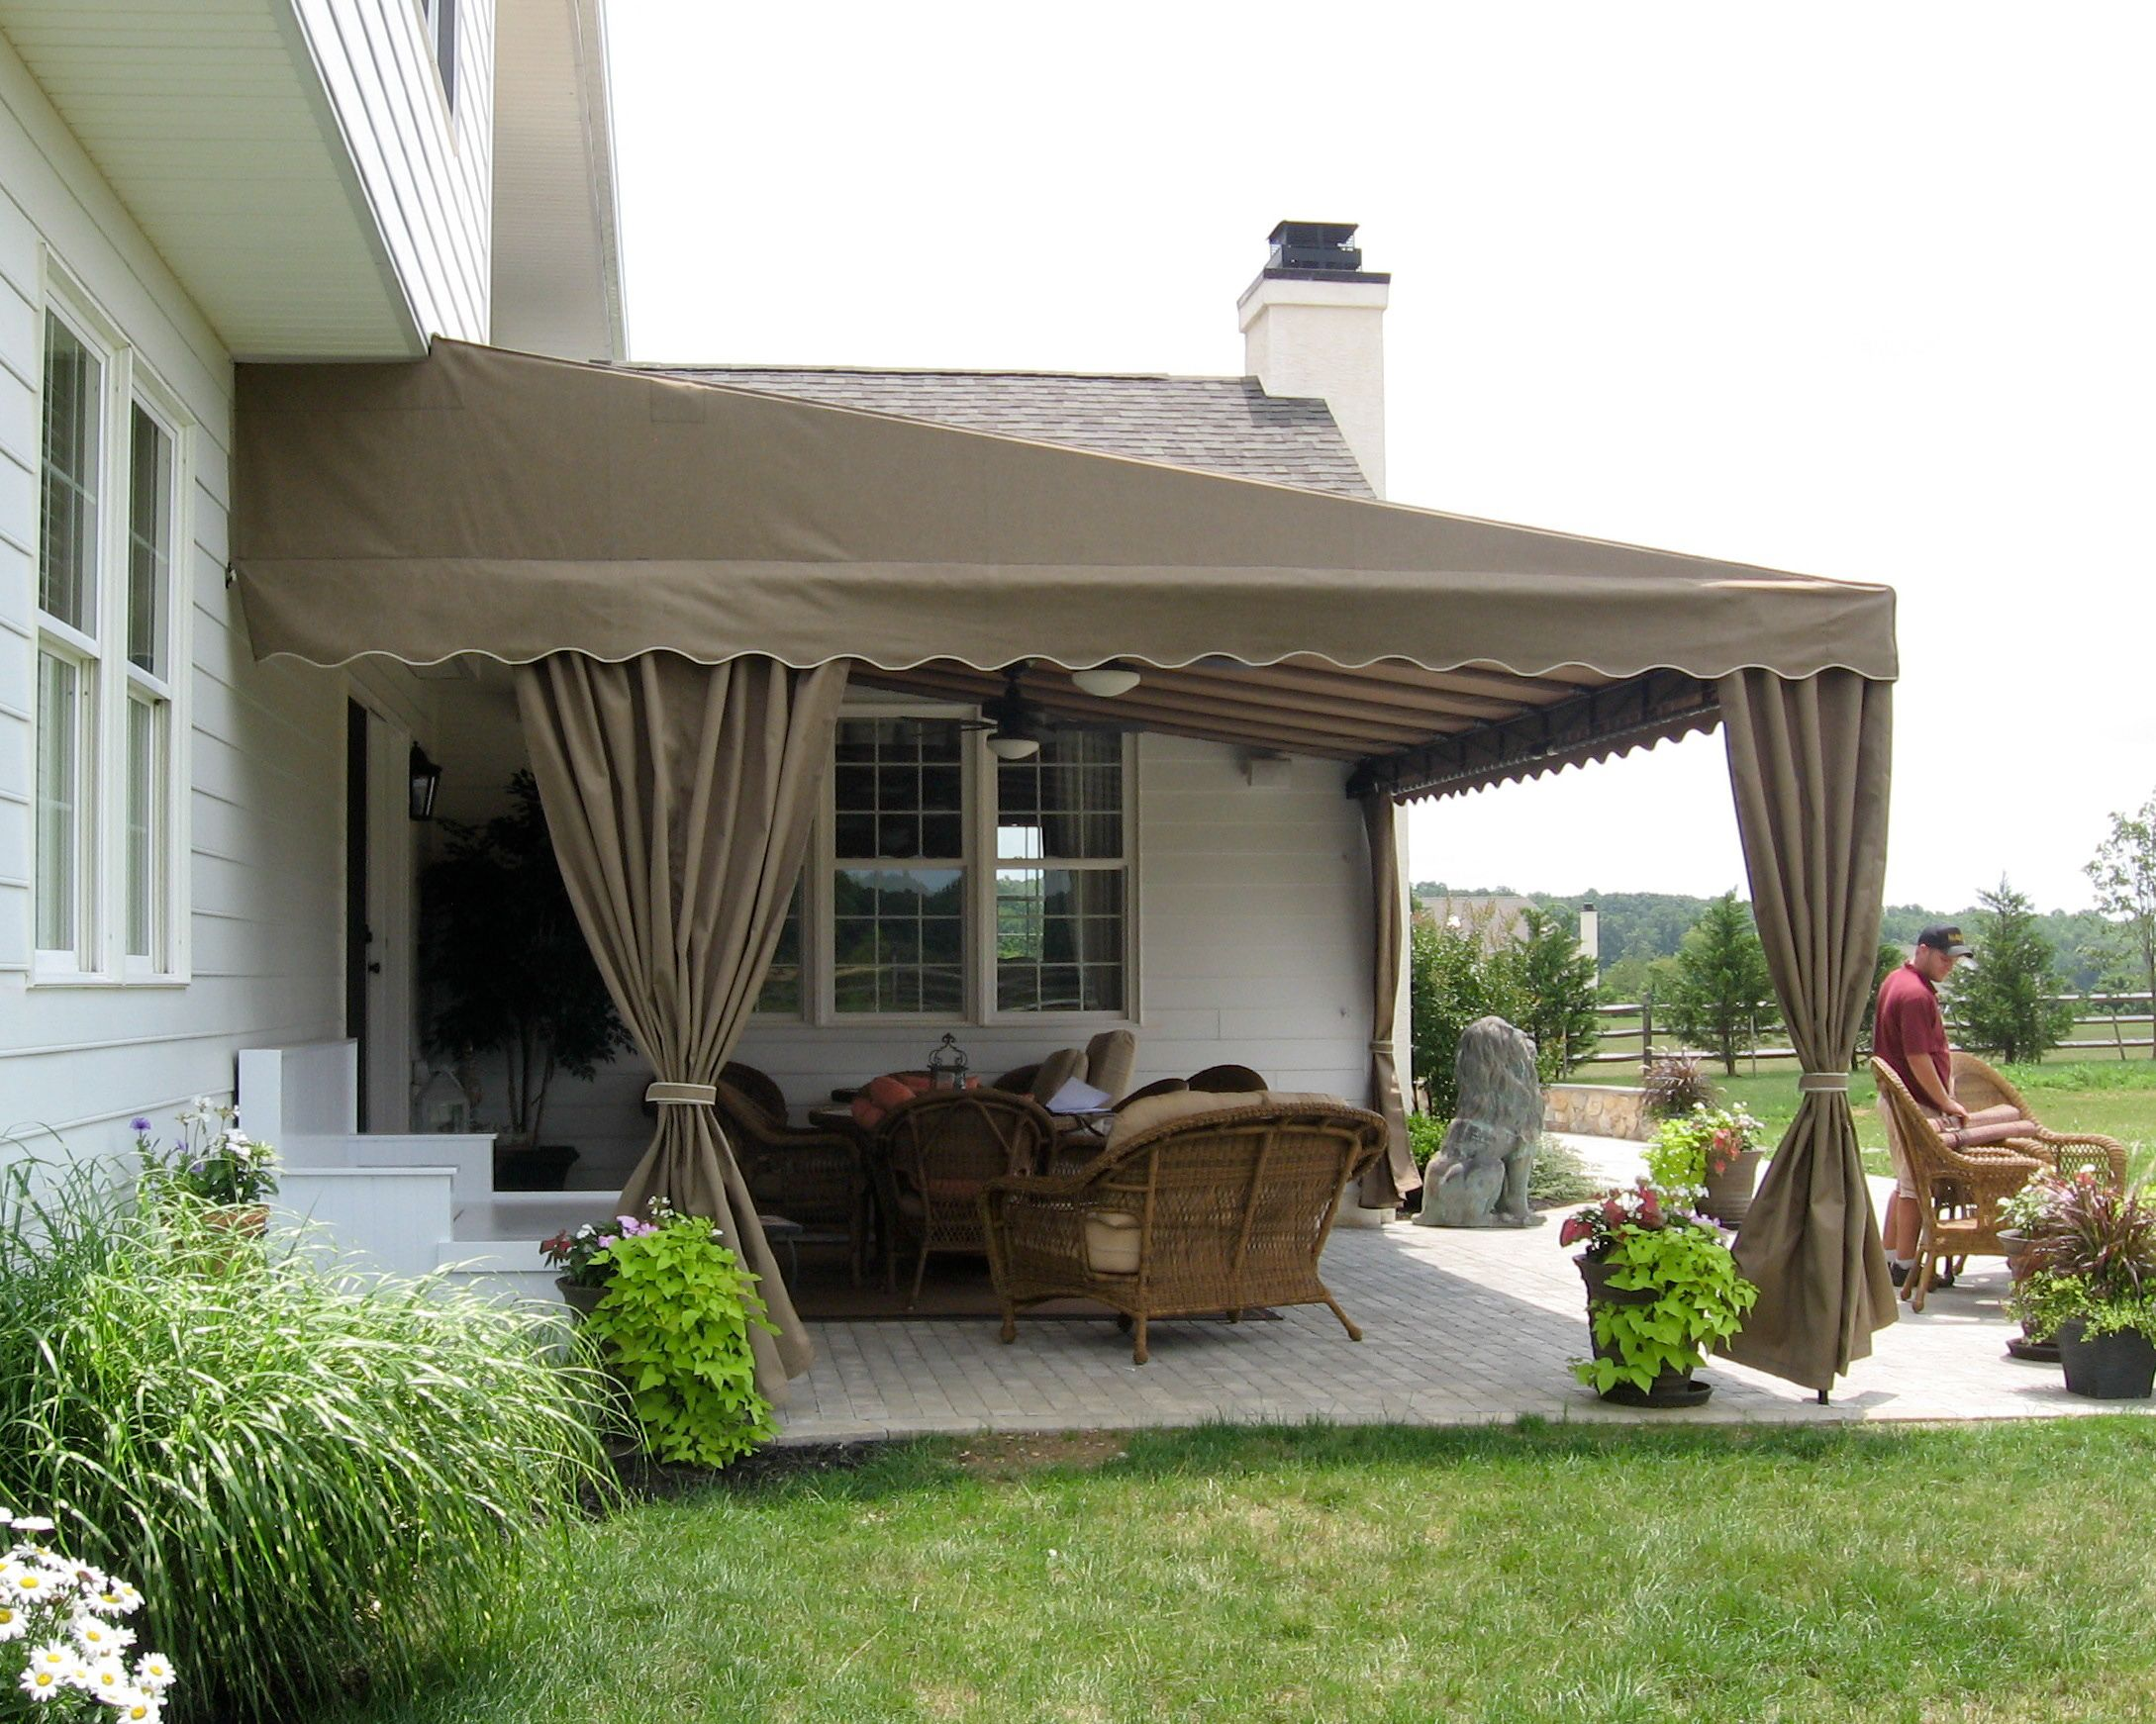 Residential Deck Or Patio Awning Deck Awning Outdoor Living